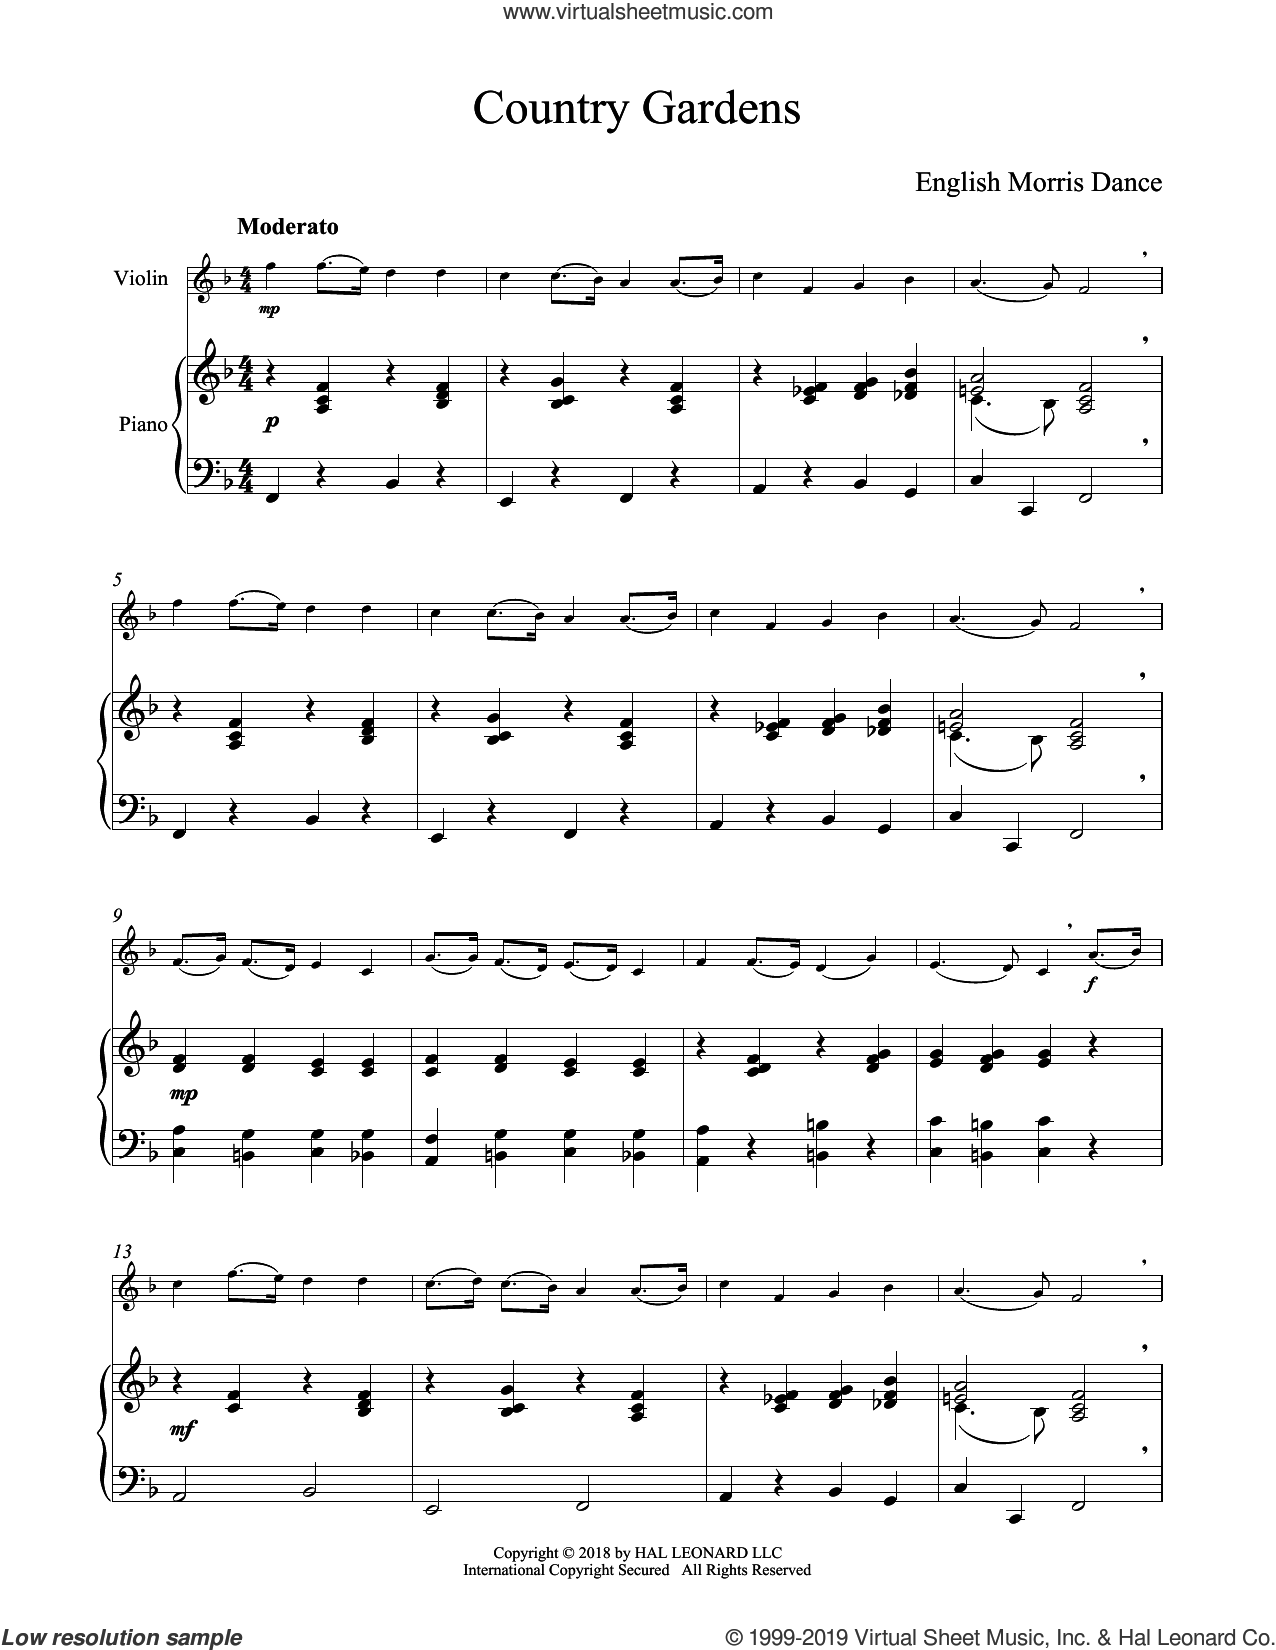 Country Gardens sheet music for violin and piano, classical score, intermediate skill level